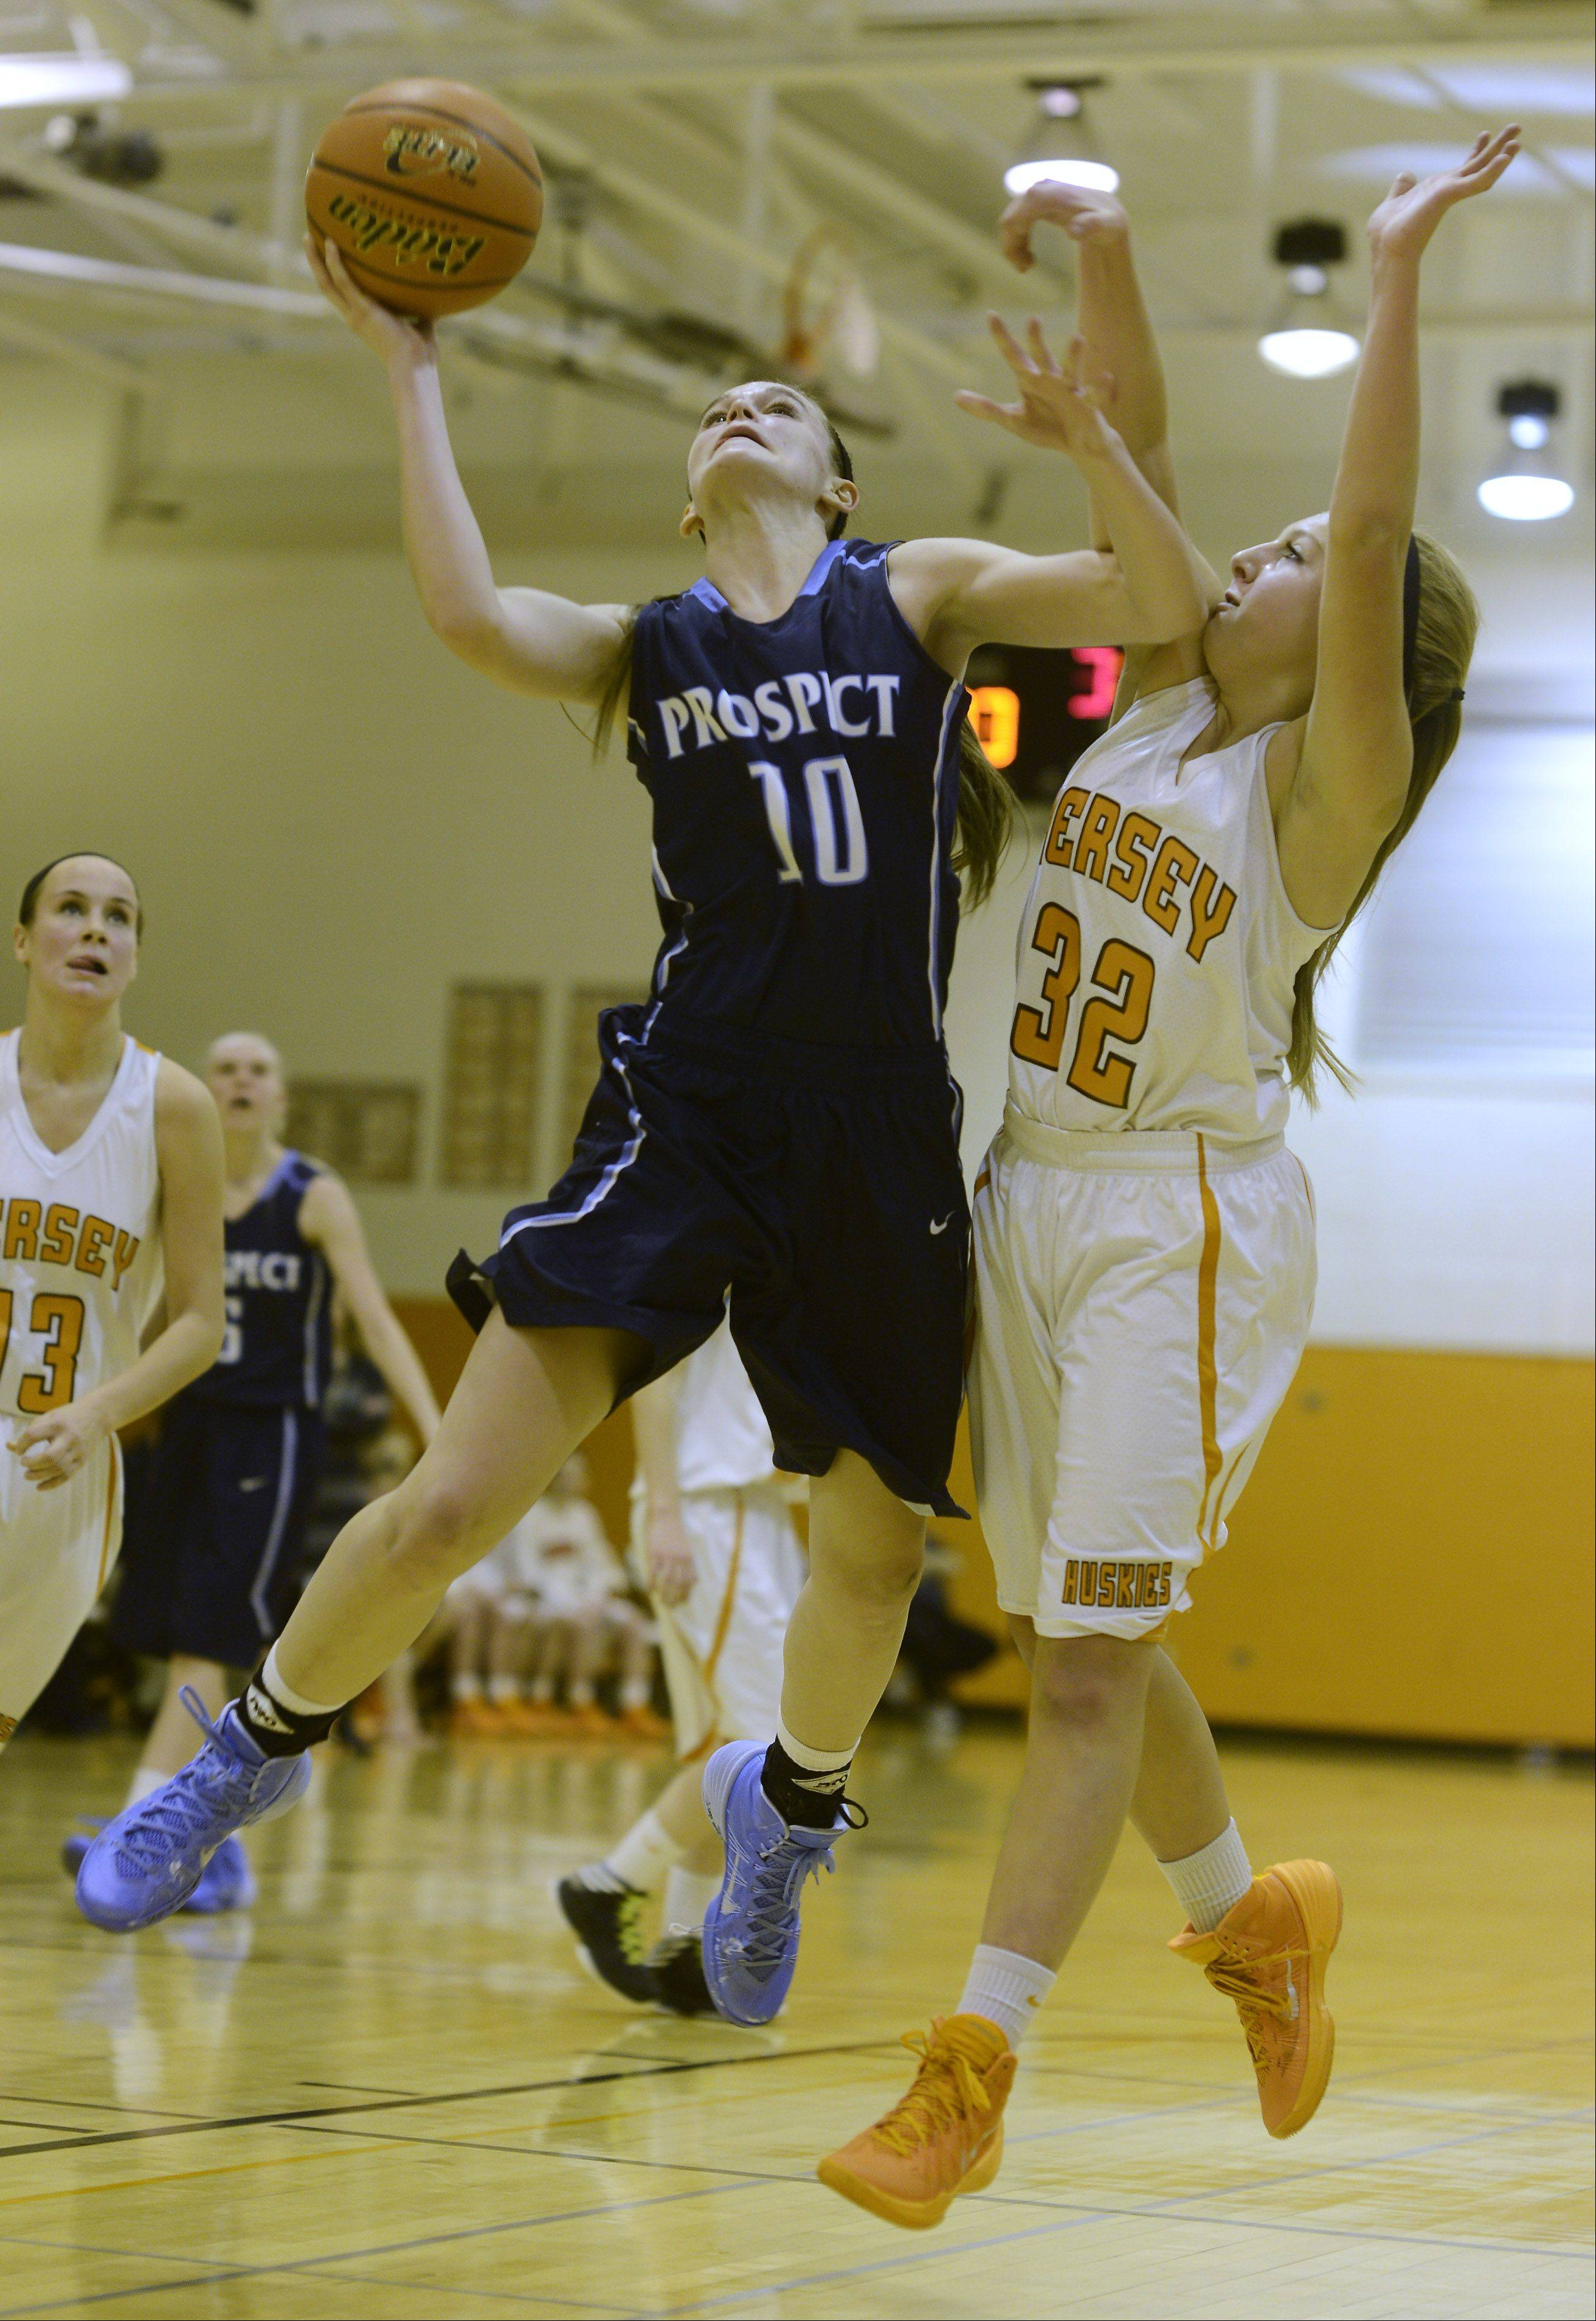 Prospect's Taylor Will drives to the basket against Hersey defender Juliette Vainisi during Tuesday's game.